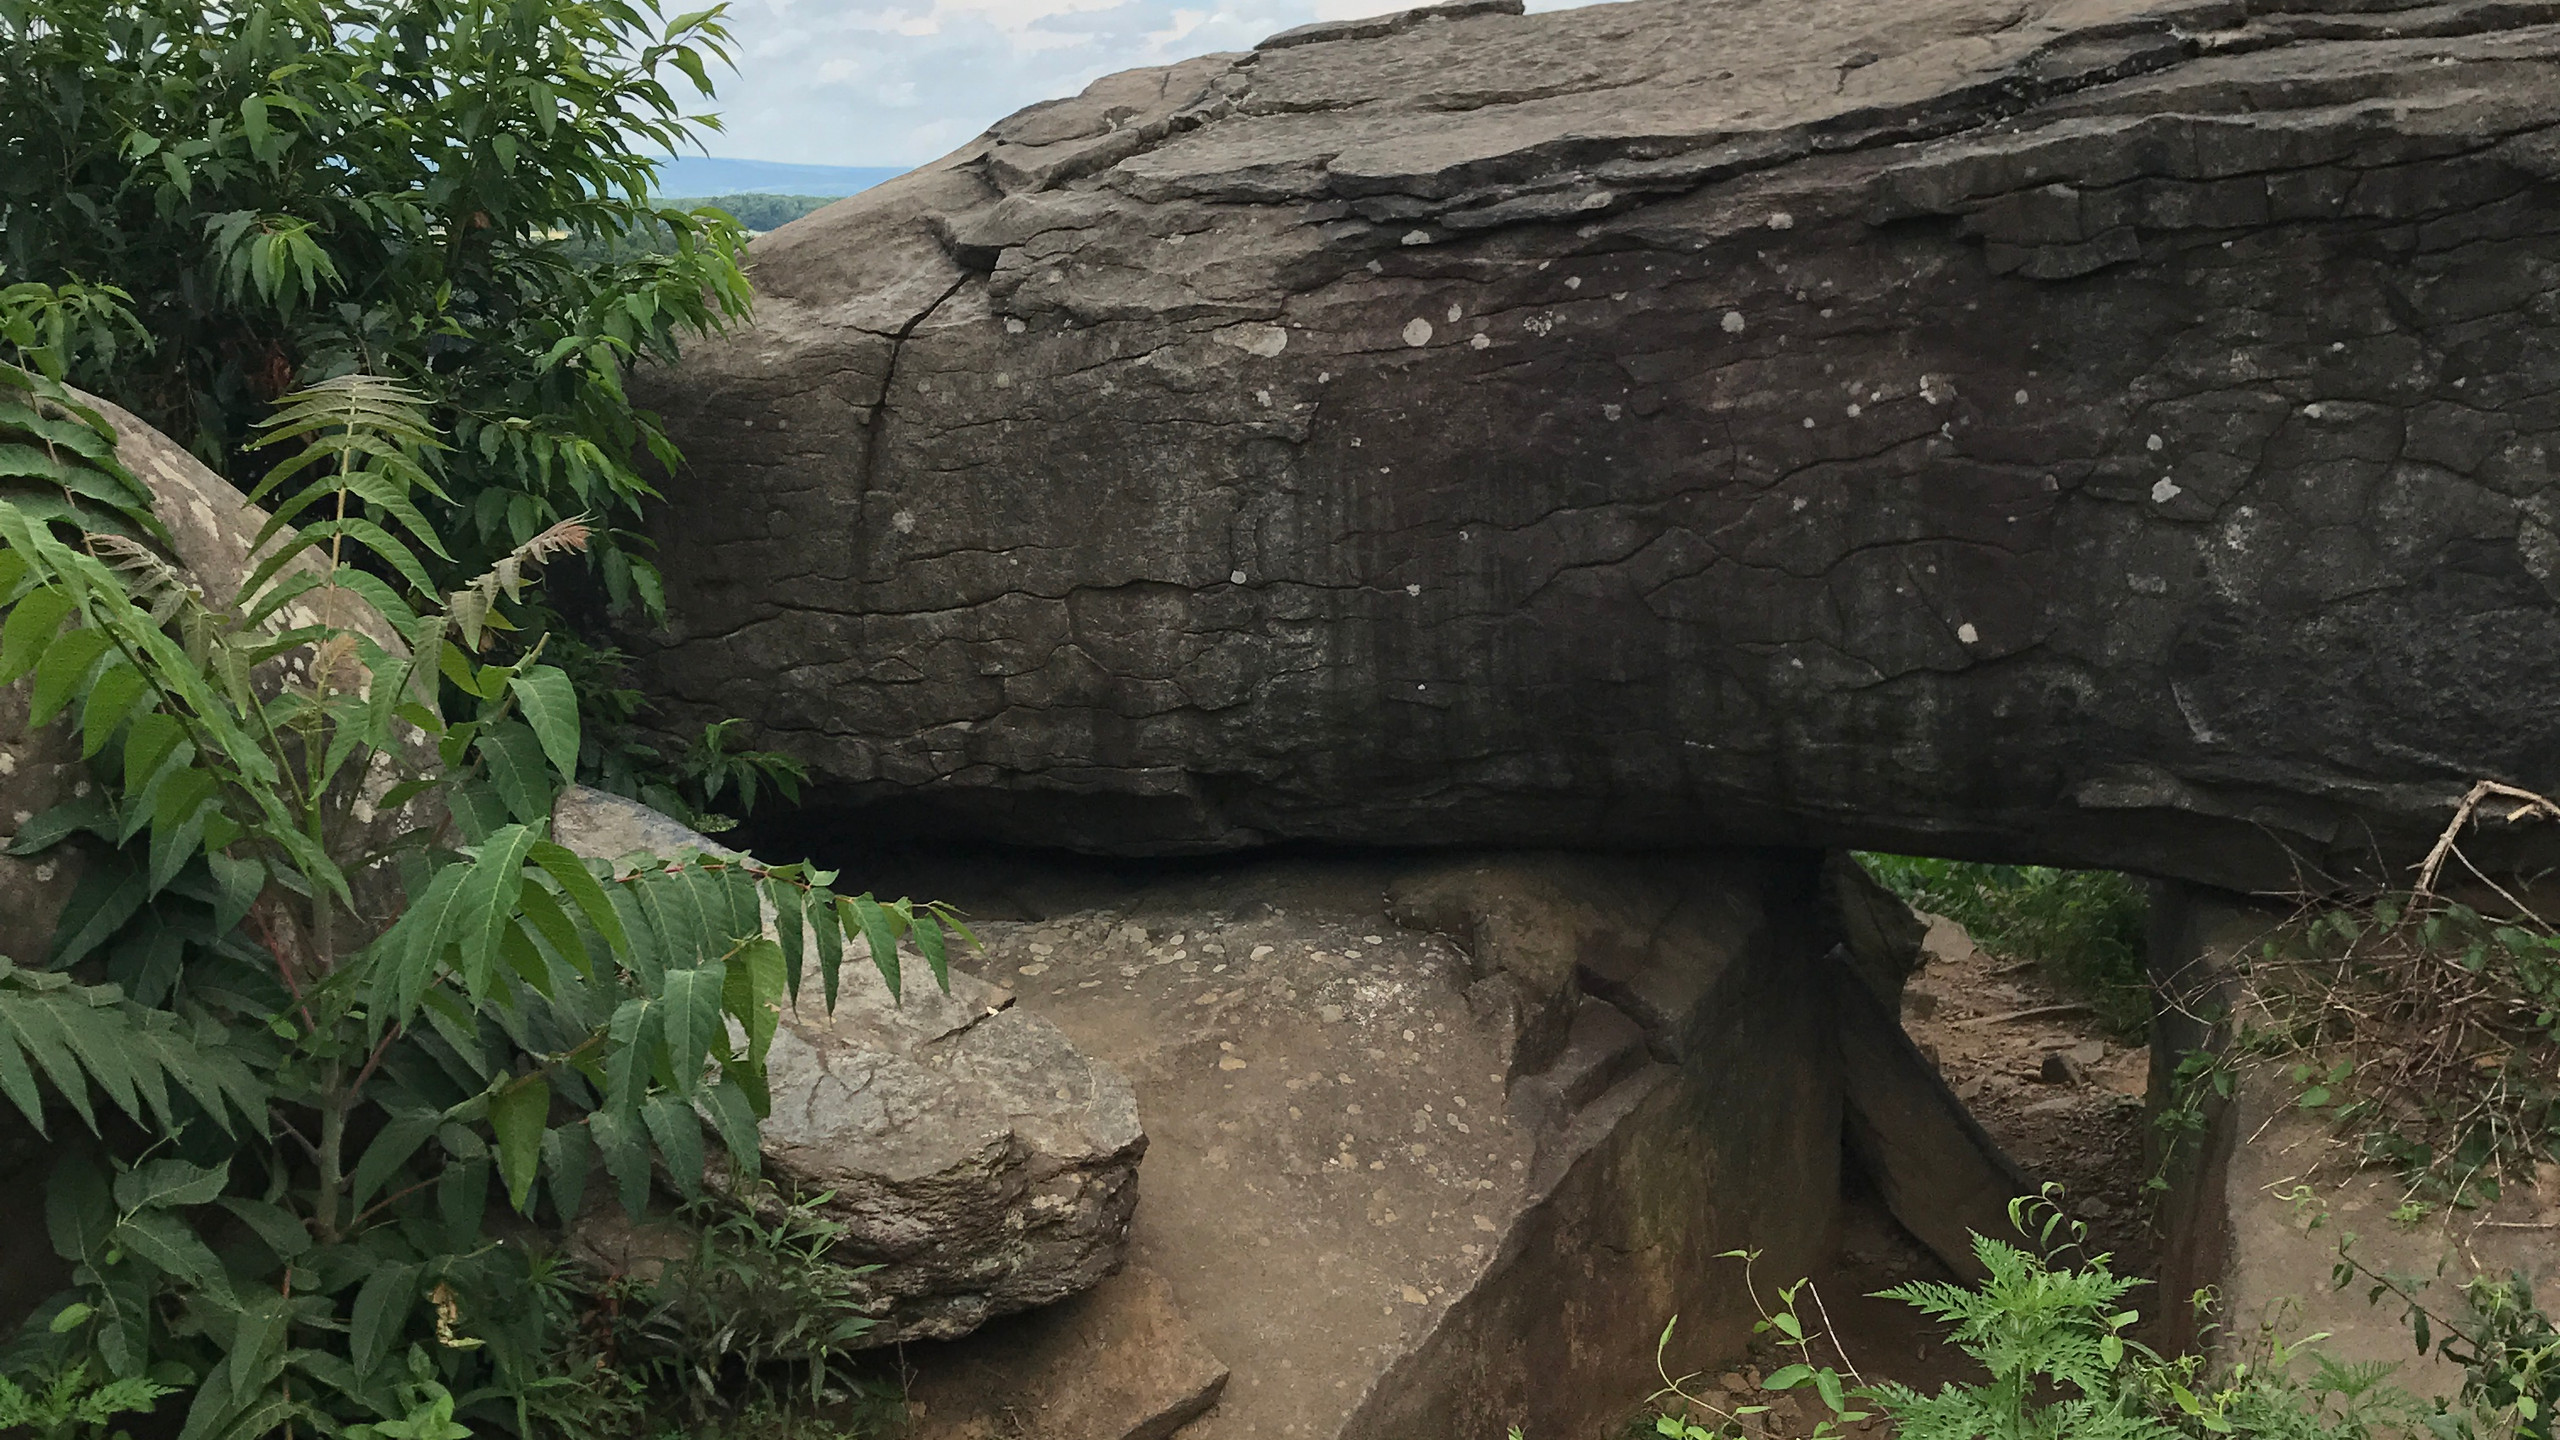 Breastworks on Little Round Top